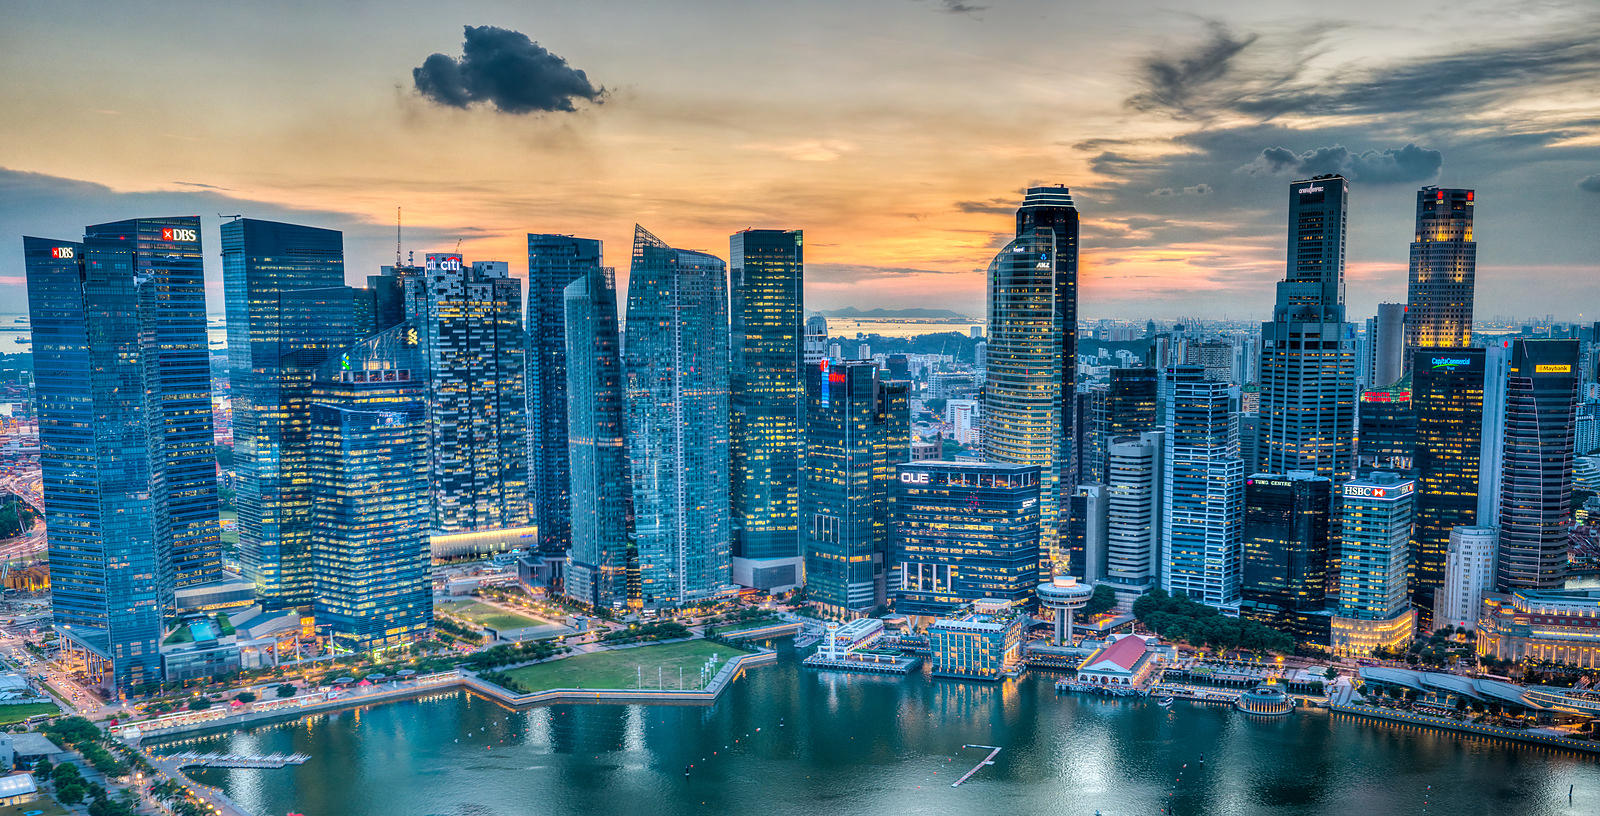 Singapore Skyline at Sunset from Marina Bay Sands